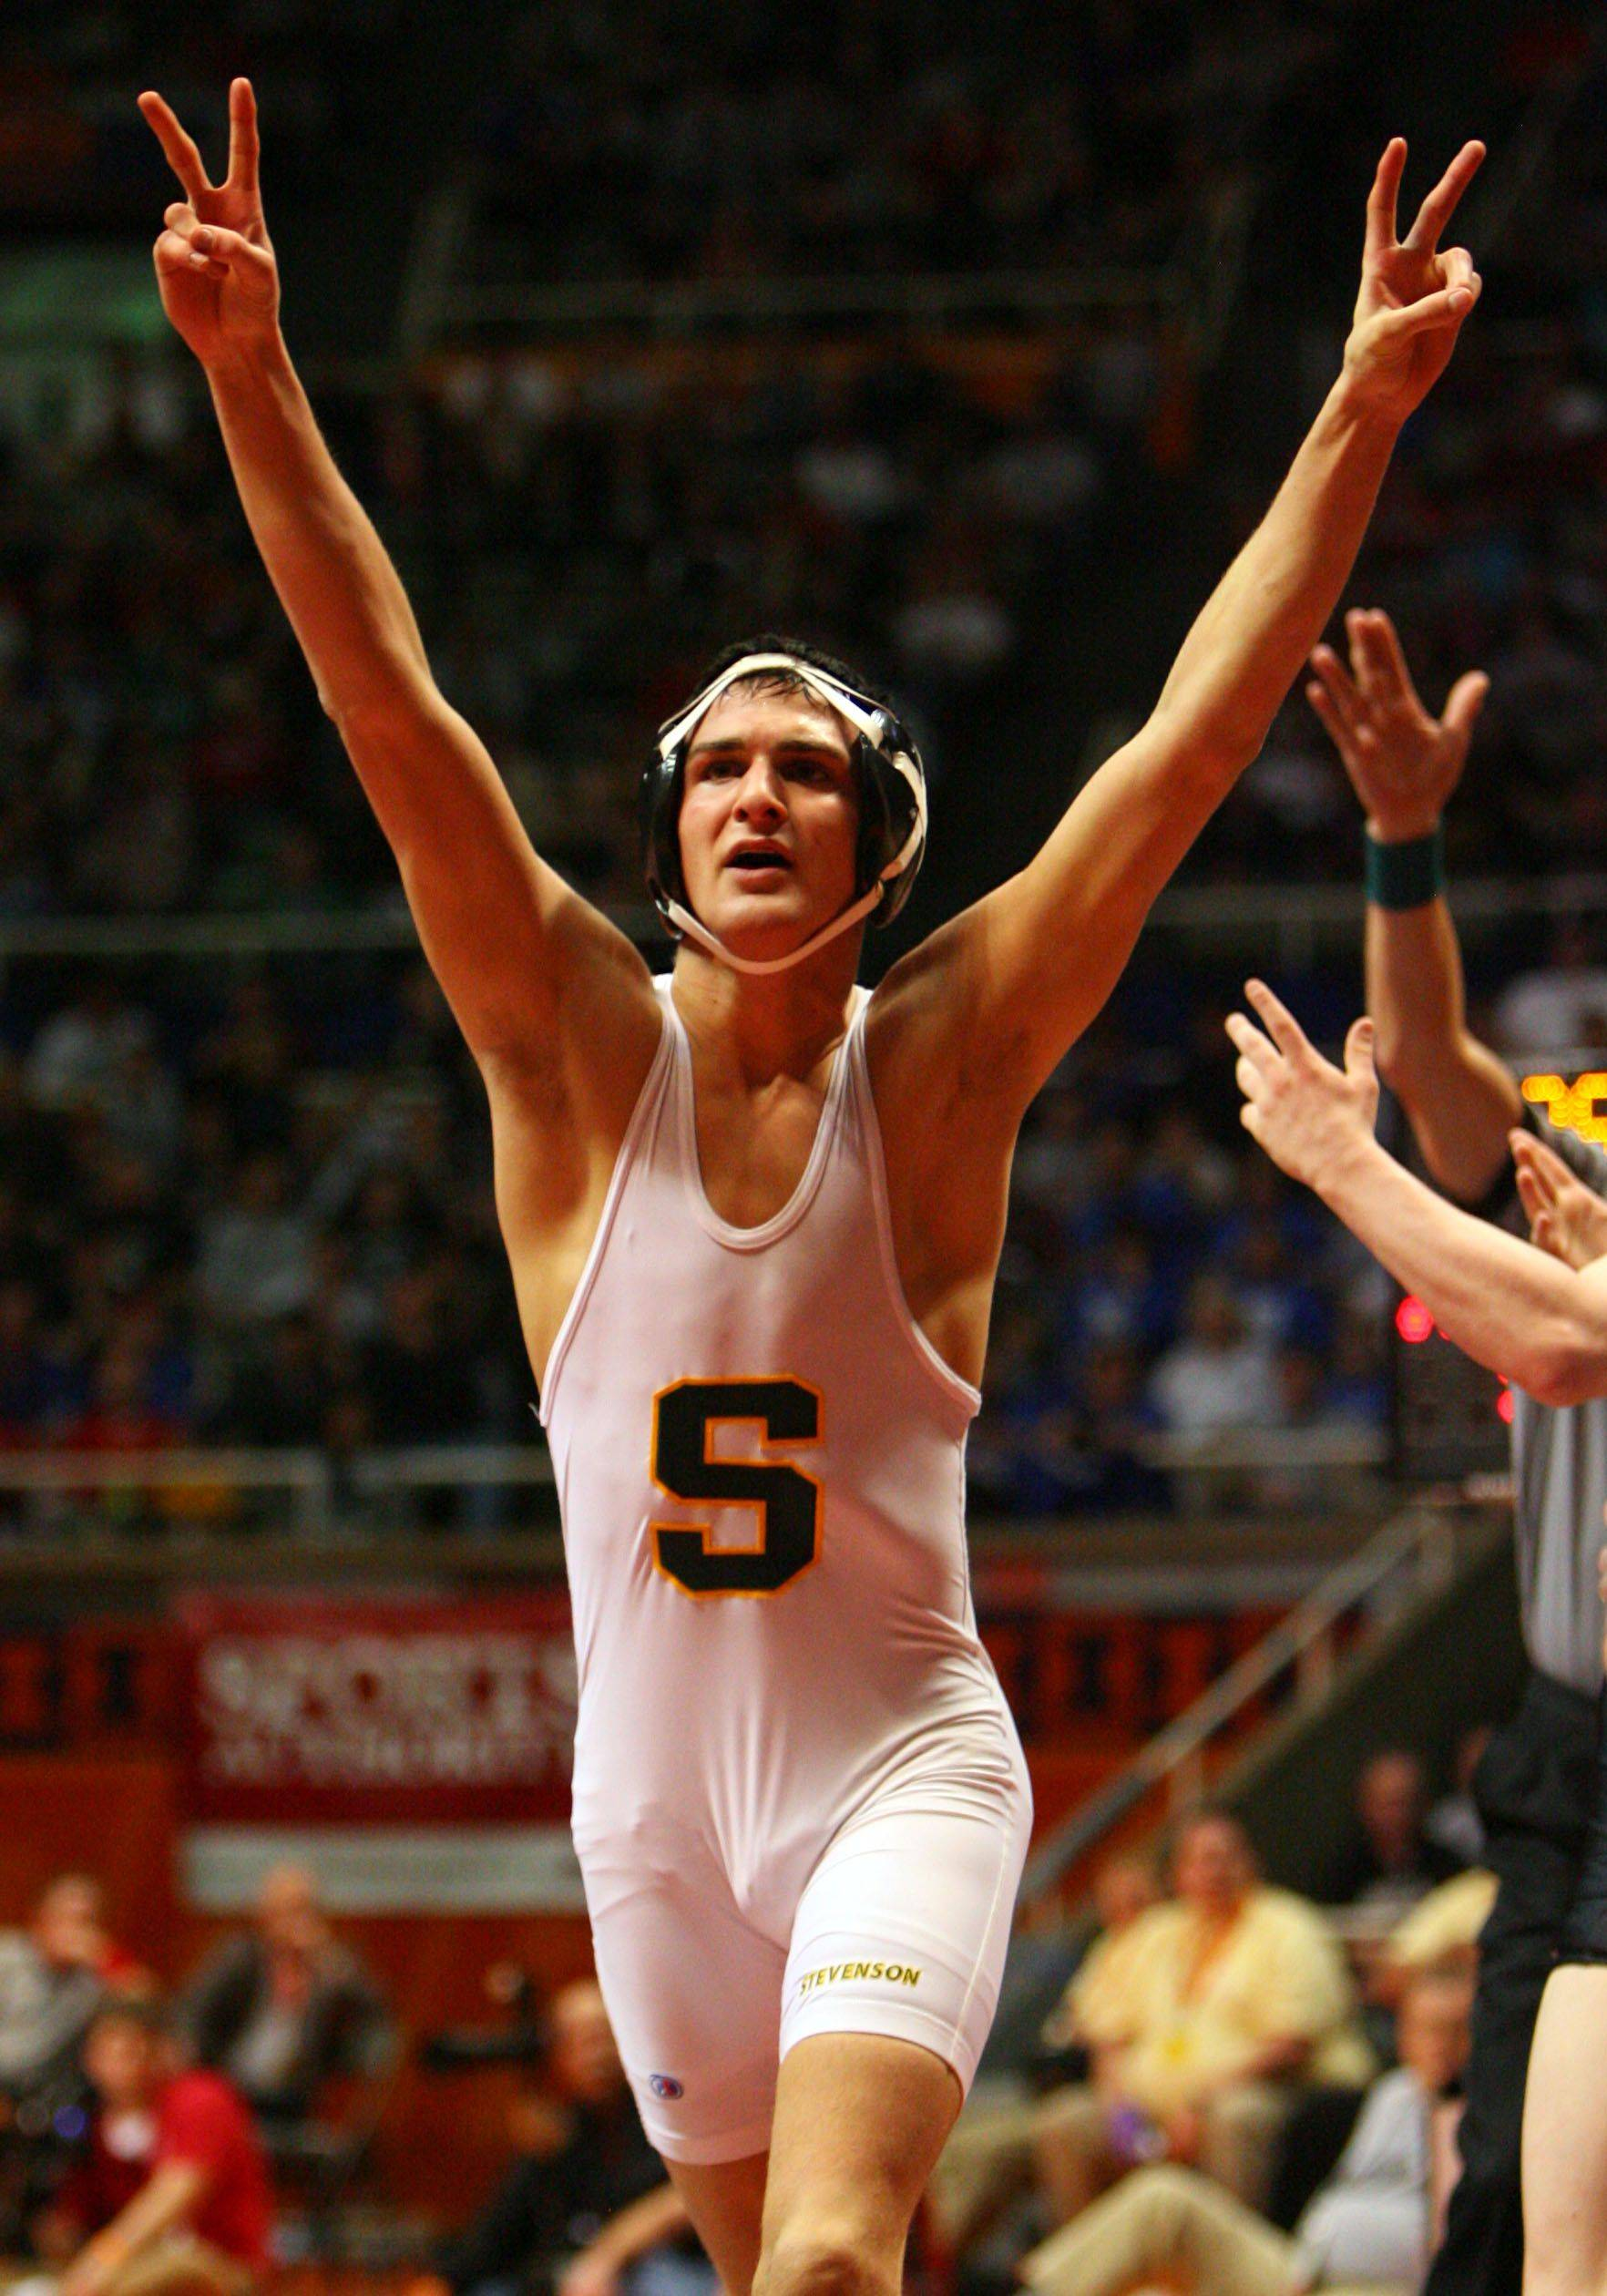 Stevenson's Danny Sabatello wins the championship at 125 pounds during state wrestling finals Saturday in Champaign.